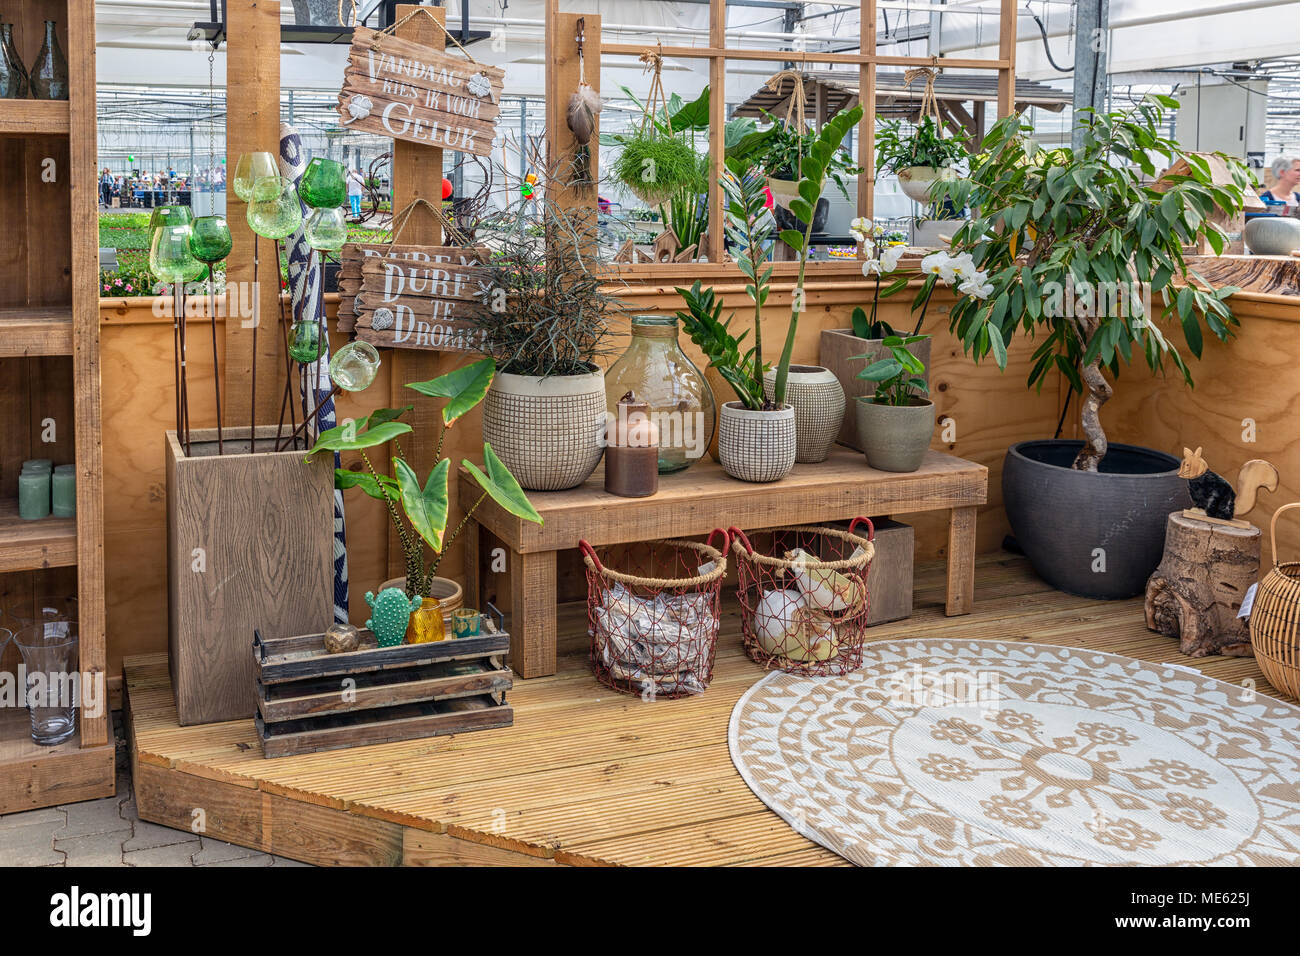 Garden shop selling plants and accessories like flower pots Stock ...